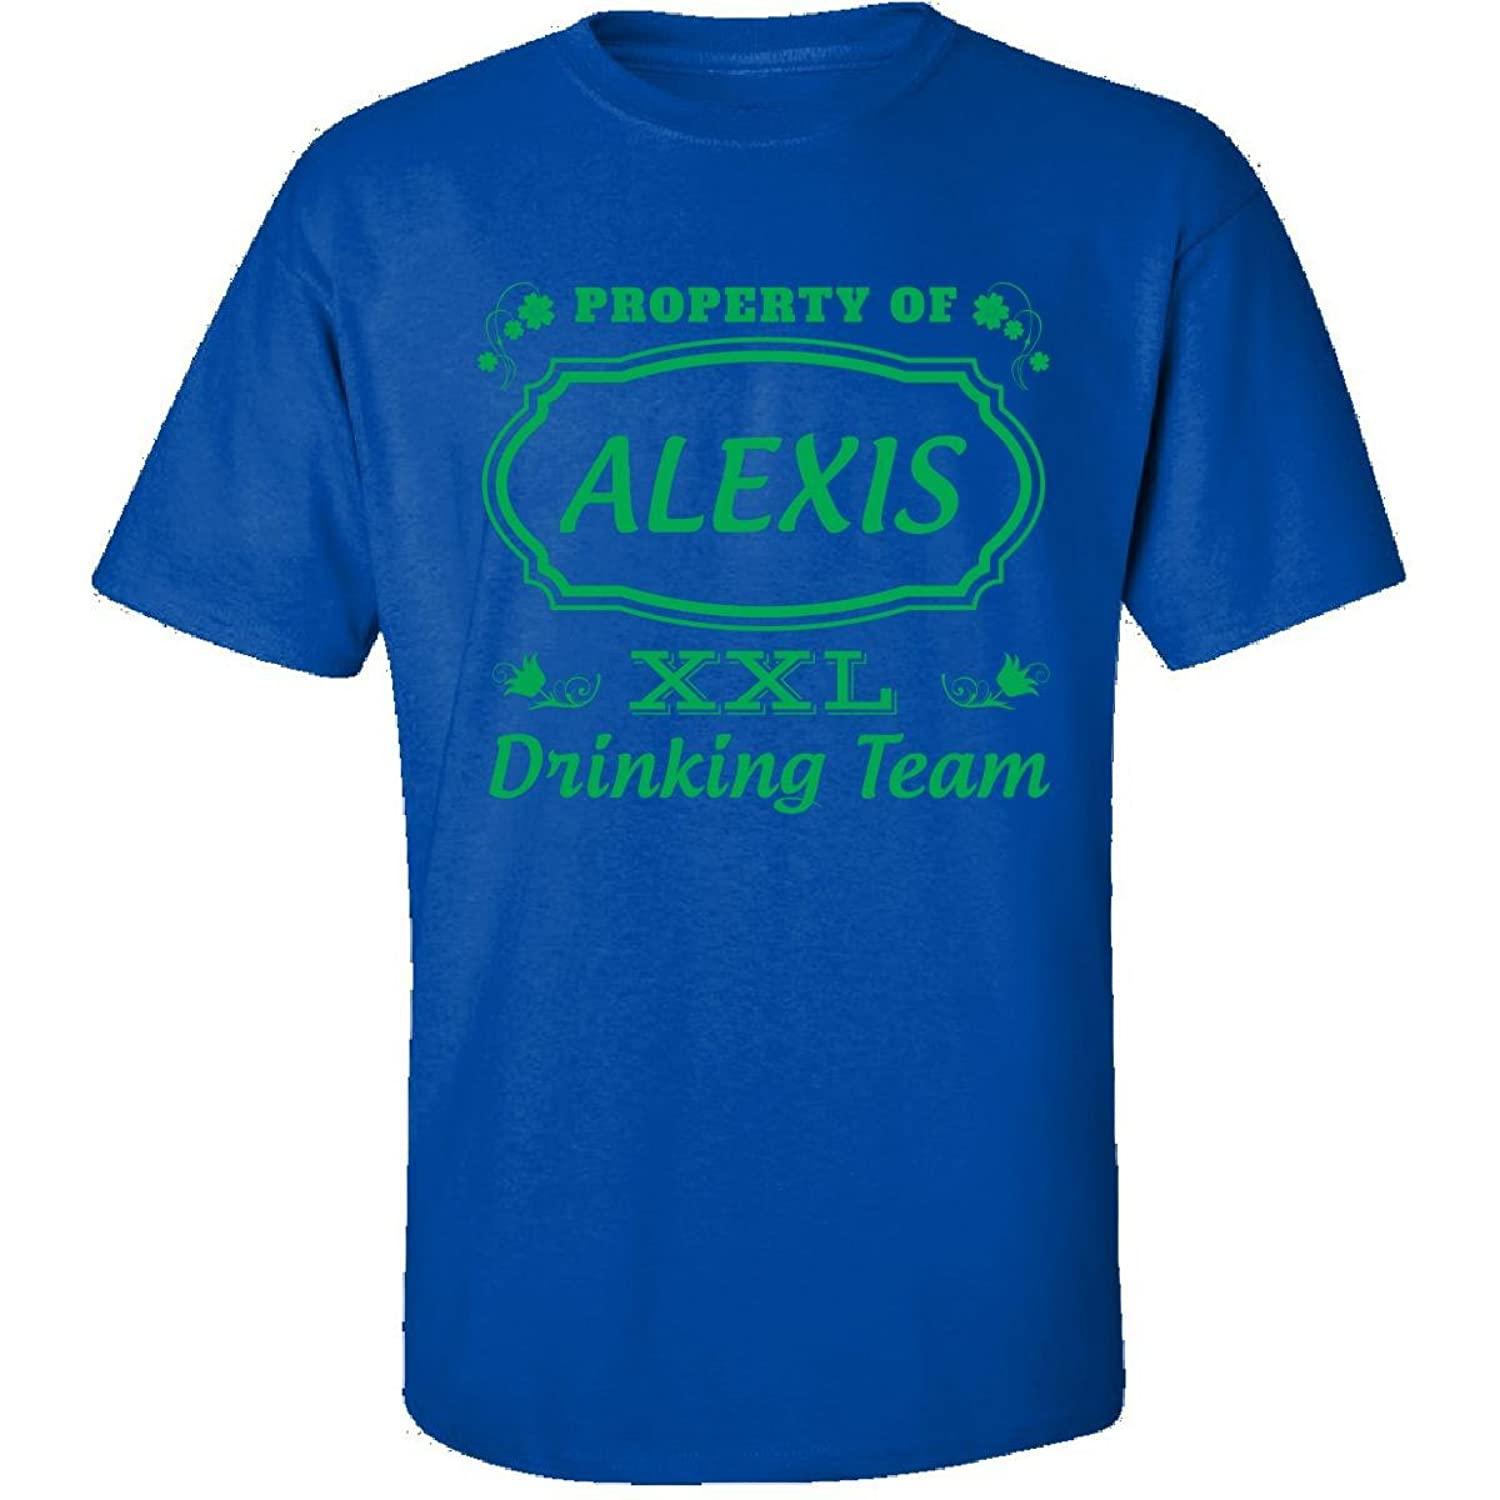 Property Of Alexis St Patrick Day Beer Drinking Team - Adult Shirt